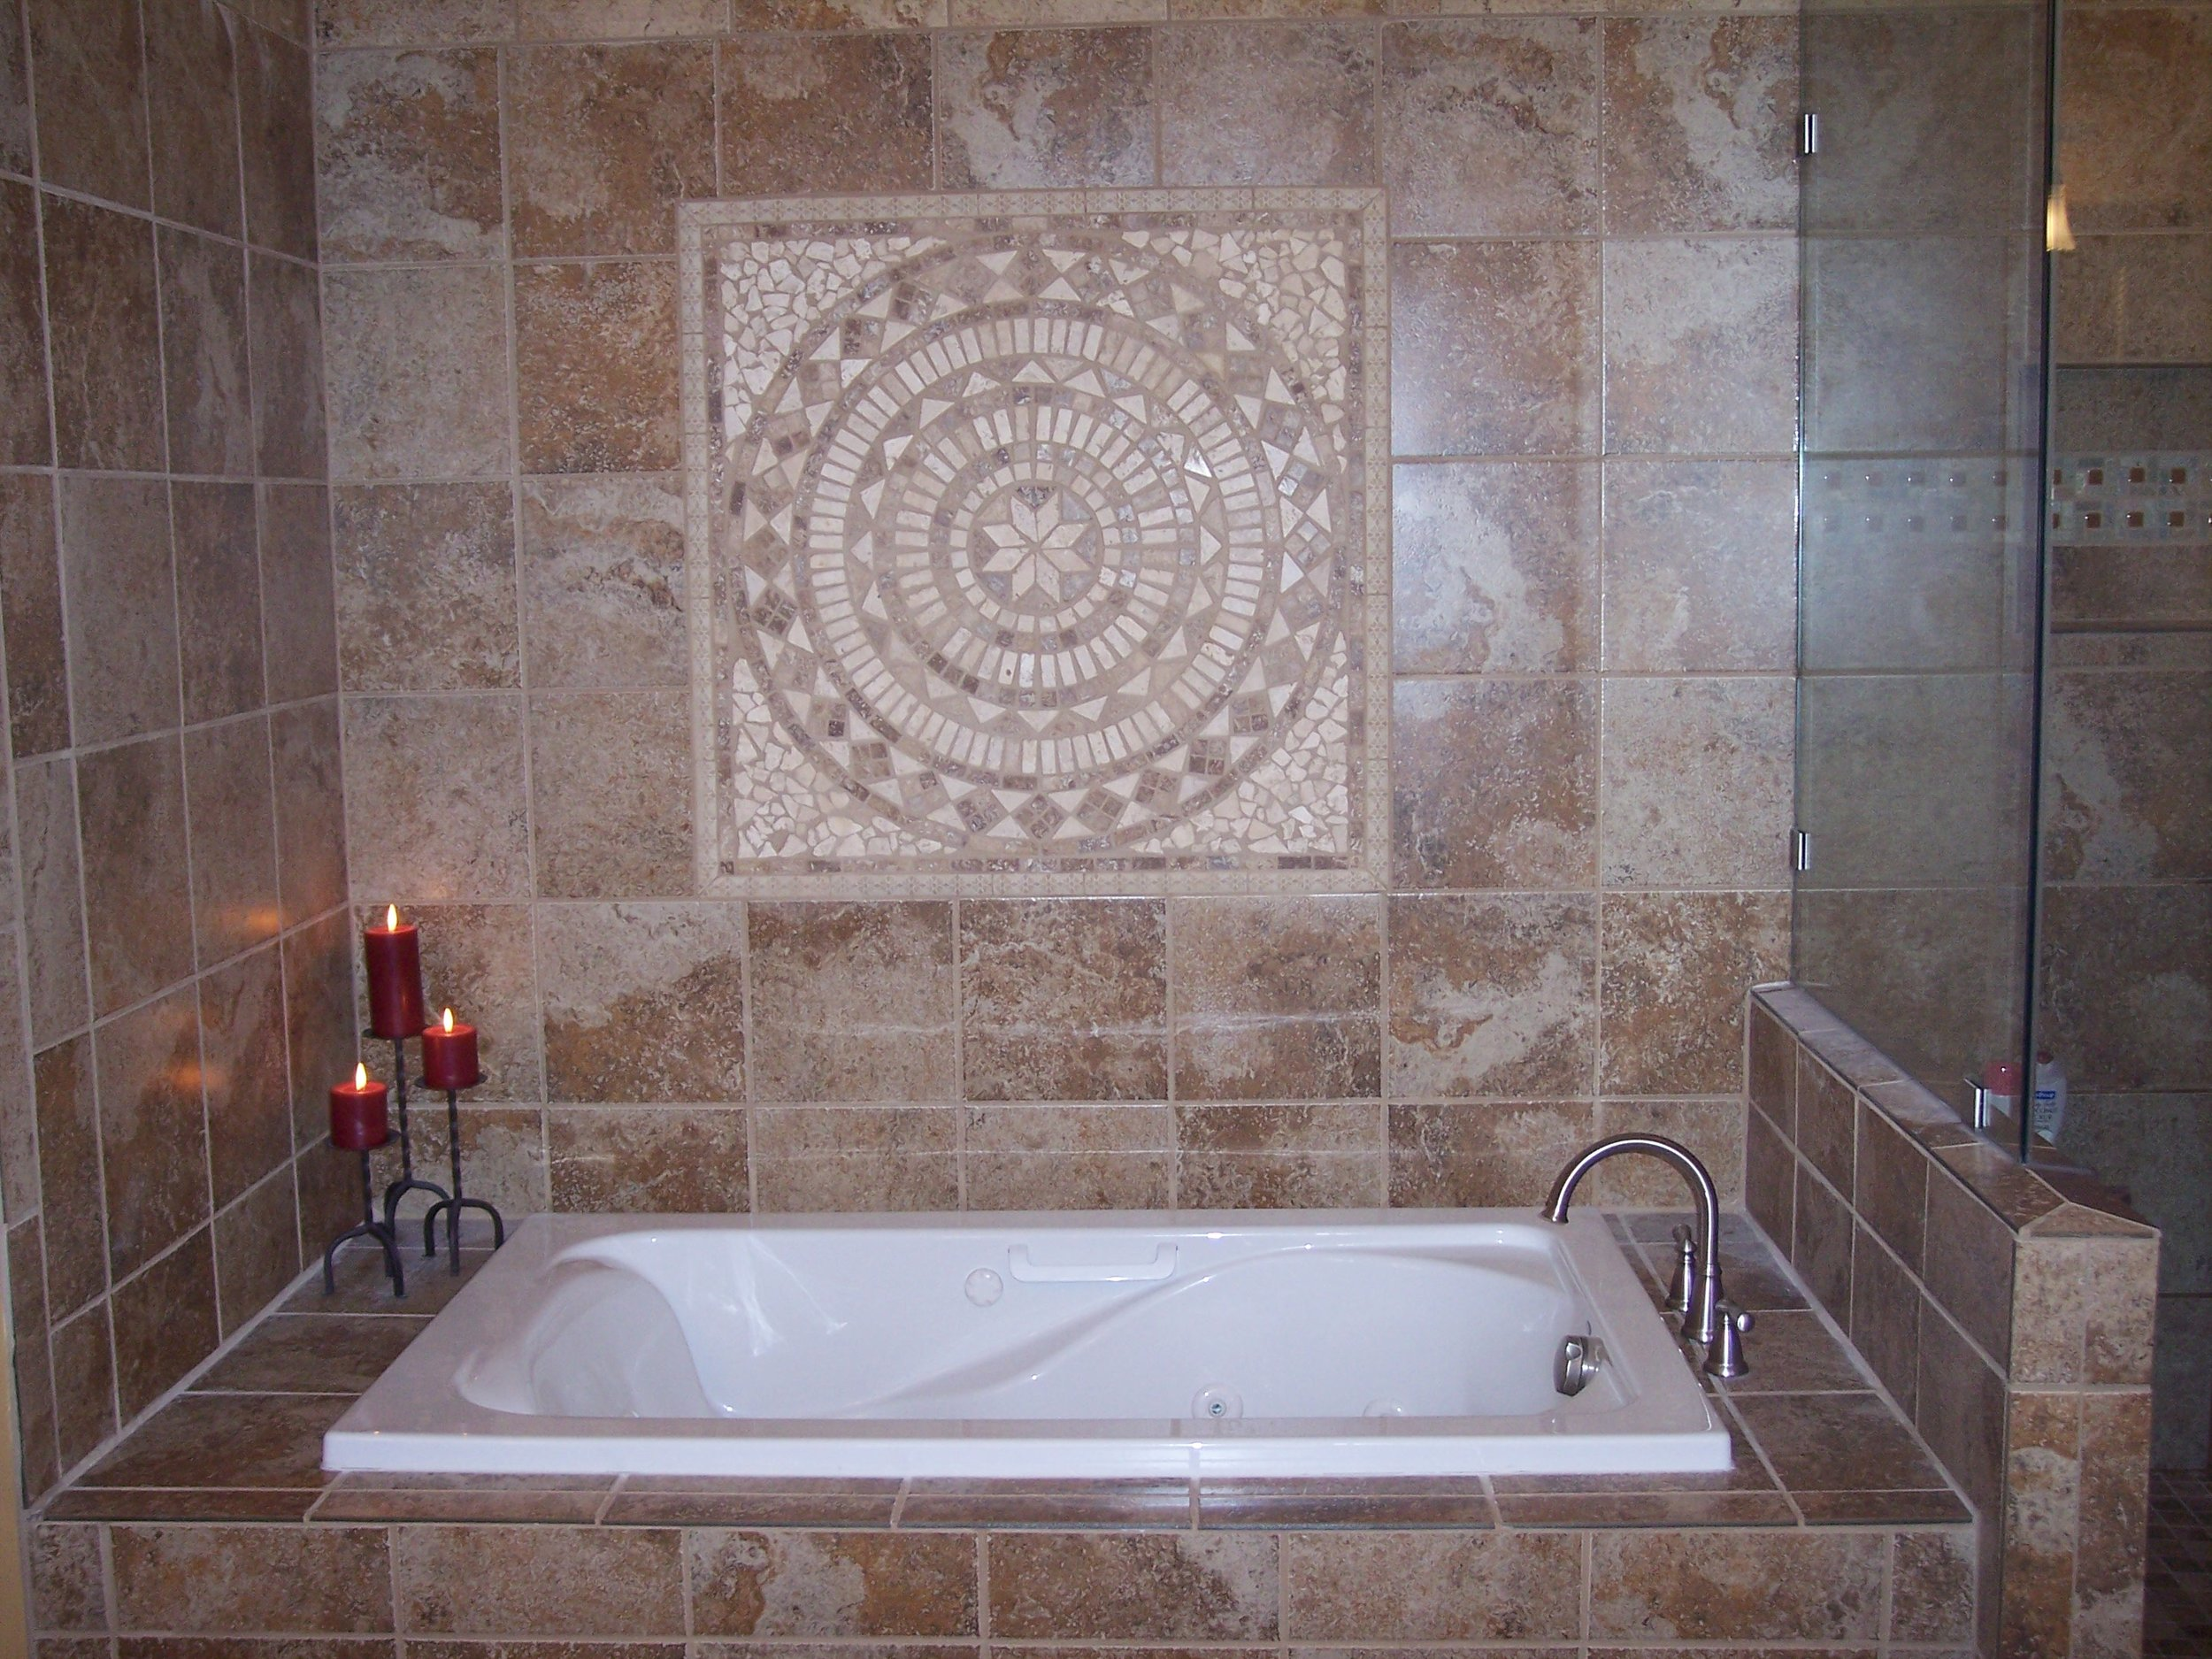 With no window in the main portion of this master bathroom, a tile mural was added.